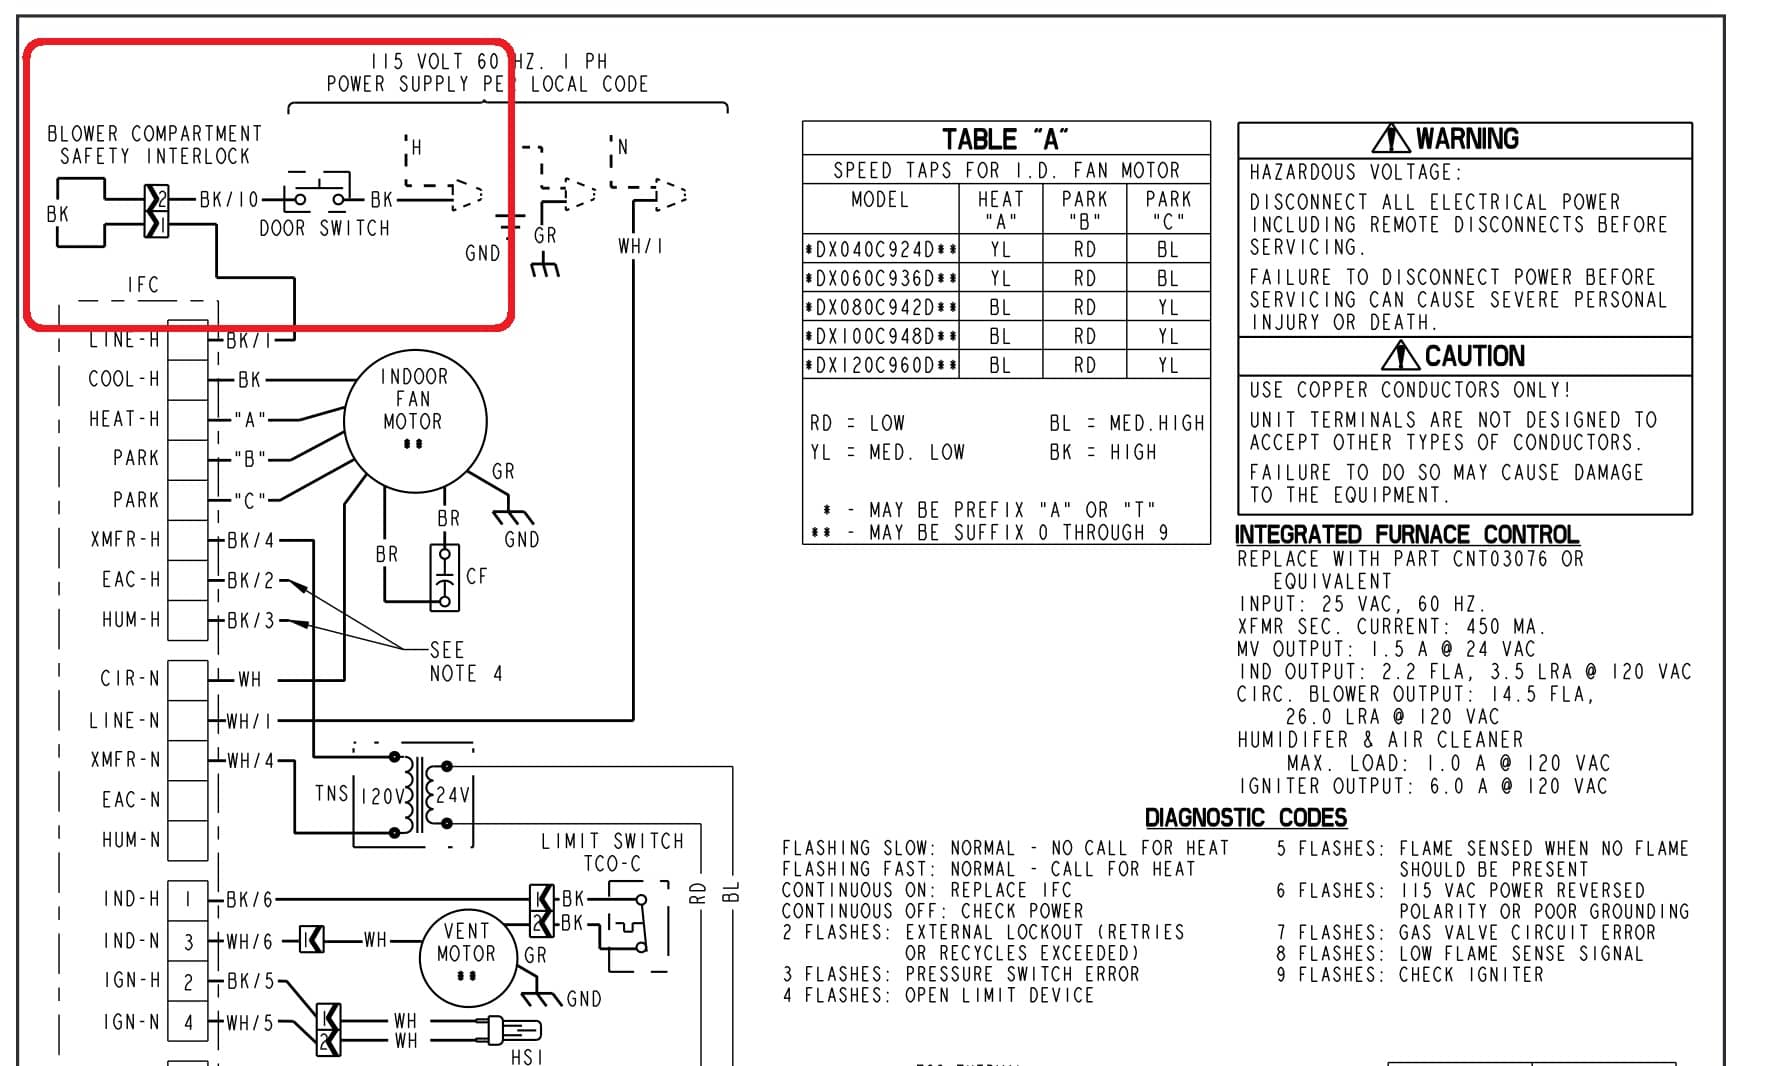 Goodman Heat Pump Air Handler Wiring Diagram on rheem heat pump air handler wiring diagram